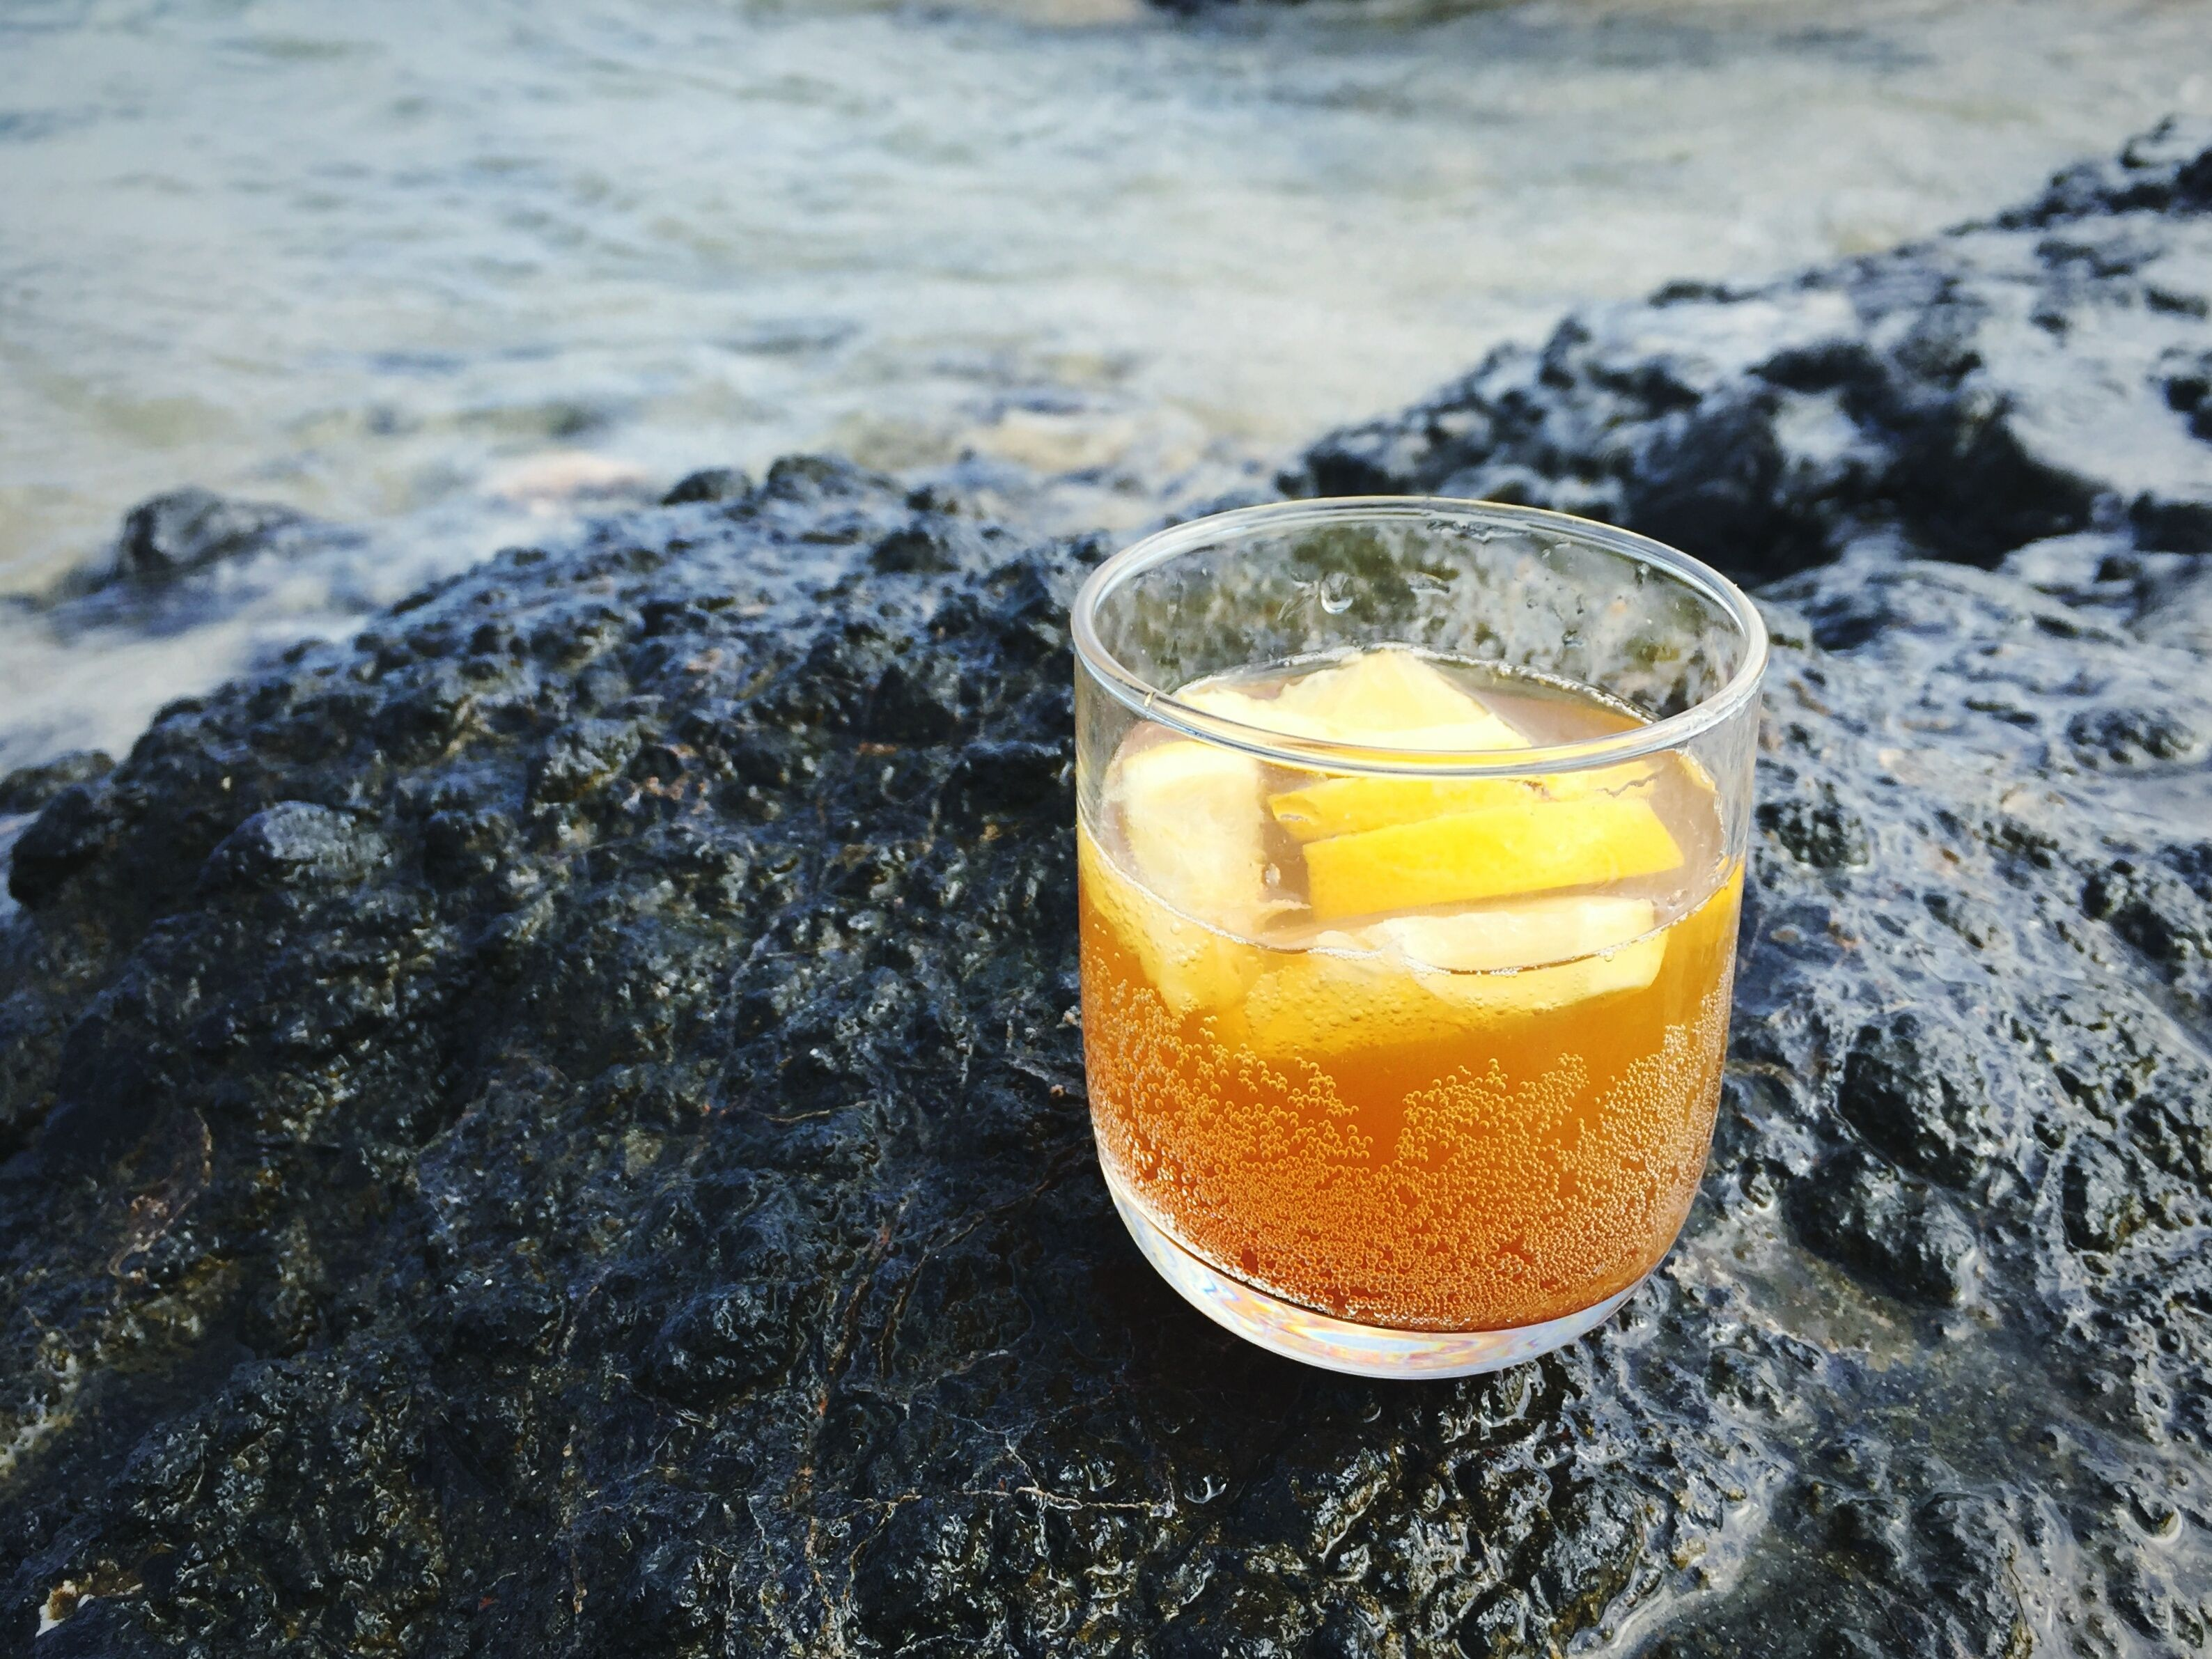 High Angle View Of Glass With Drink On Rock By Sea